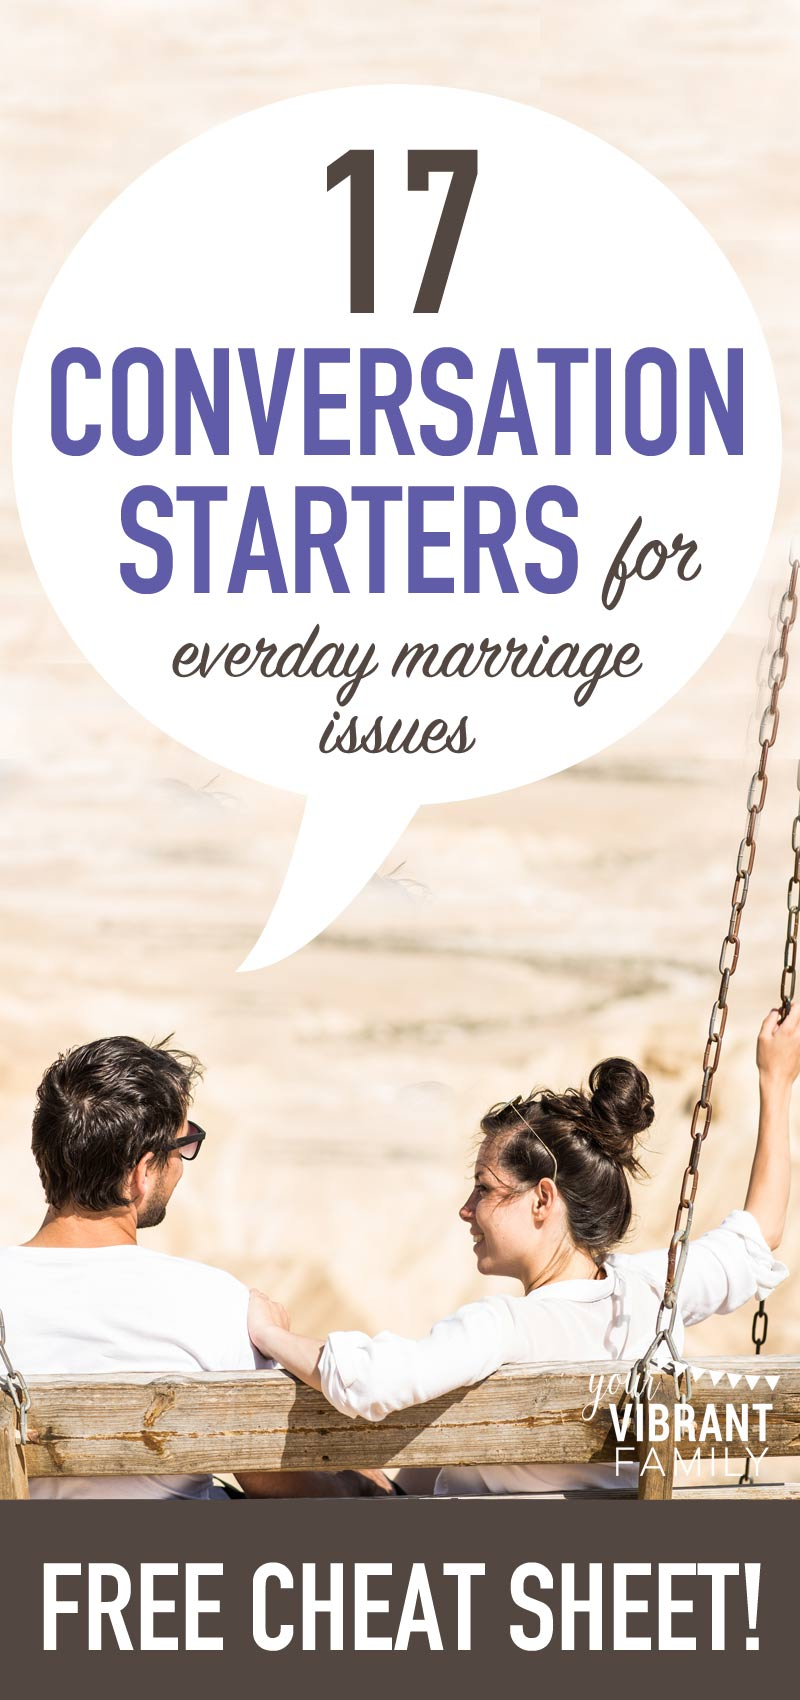 Sometimes things just don't feel right in my marriage… and I usually realize that there's some unresolved emotions we need to talk about. Ever feel that way too? Here are 17 conversation starters you can use to discuss those everyday marriage issues.